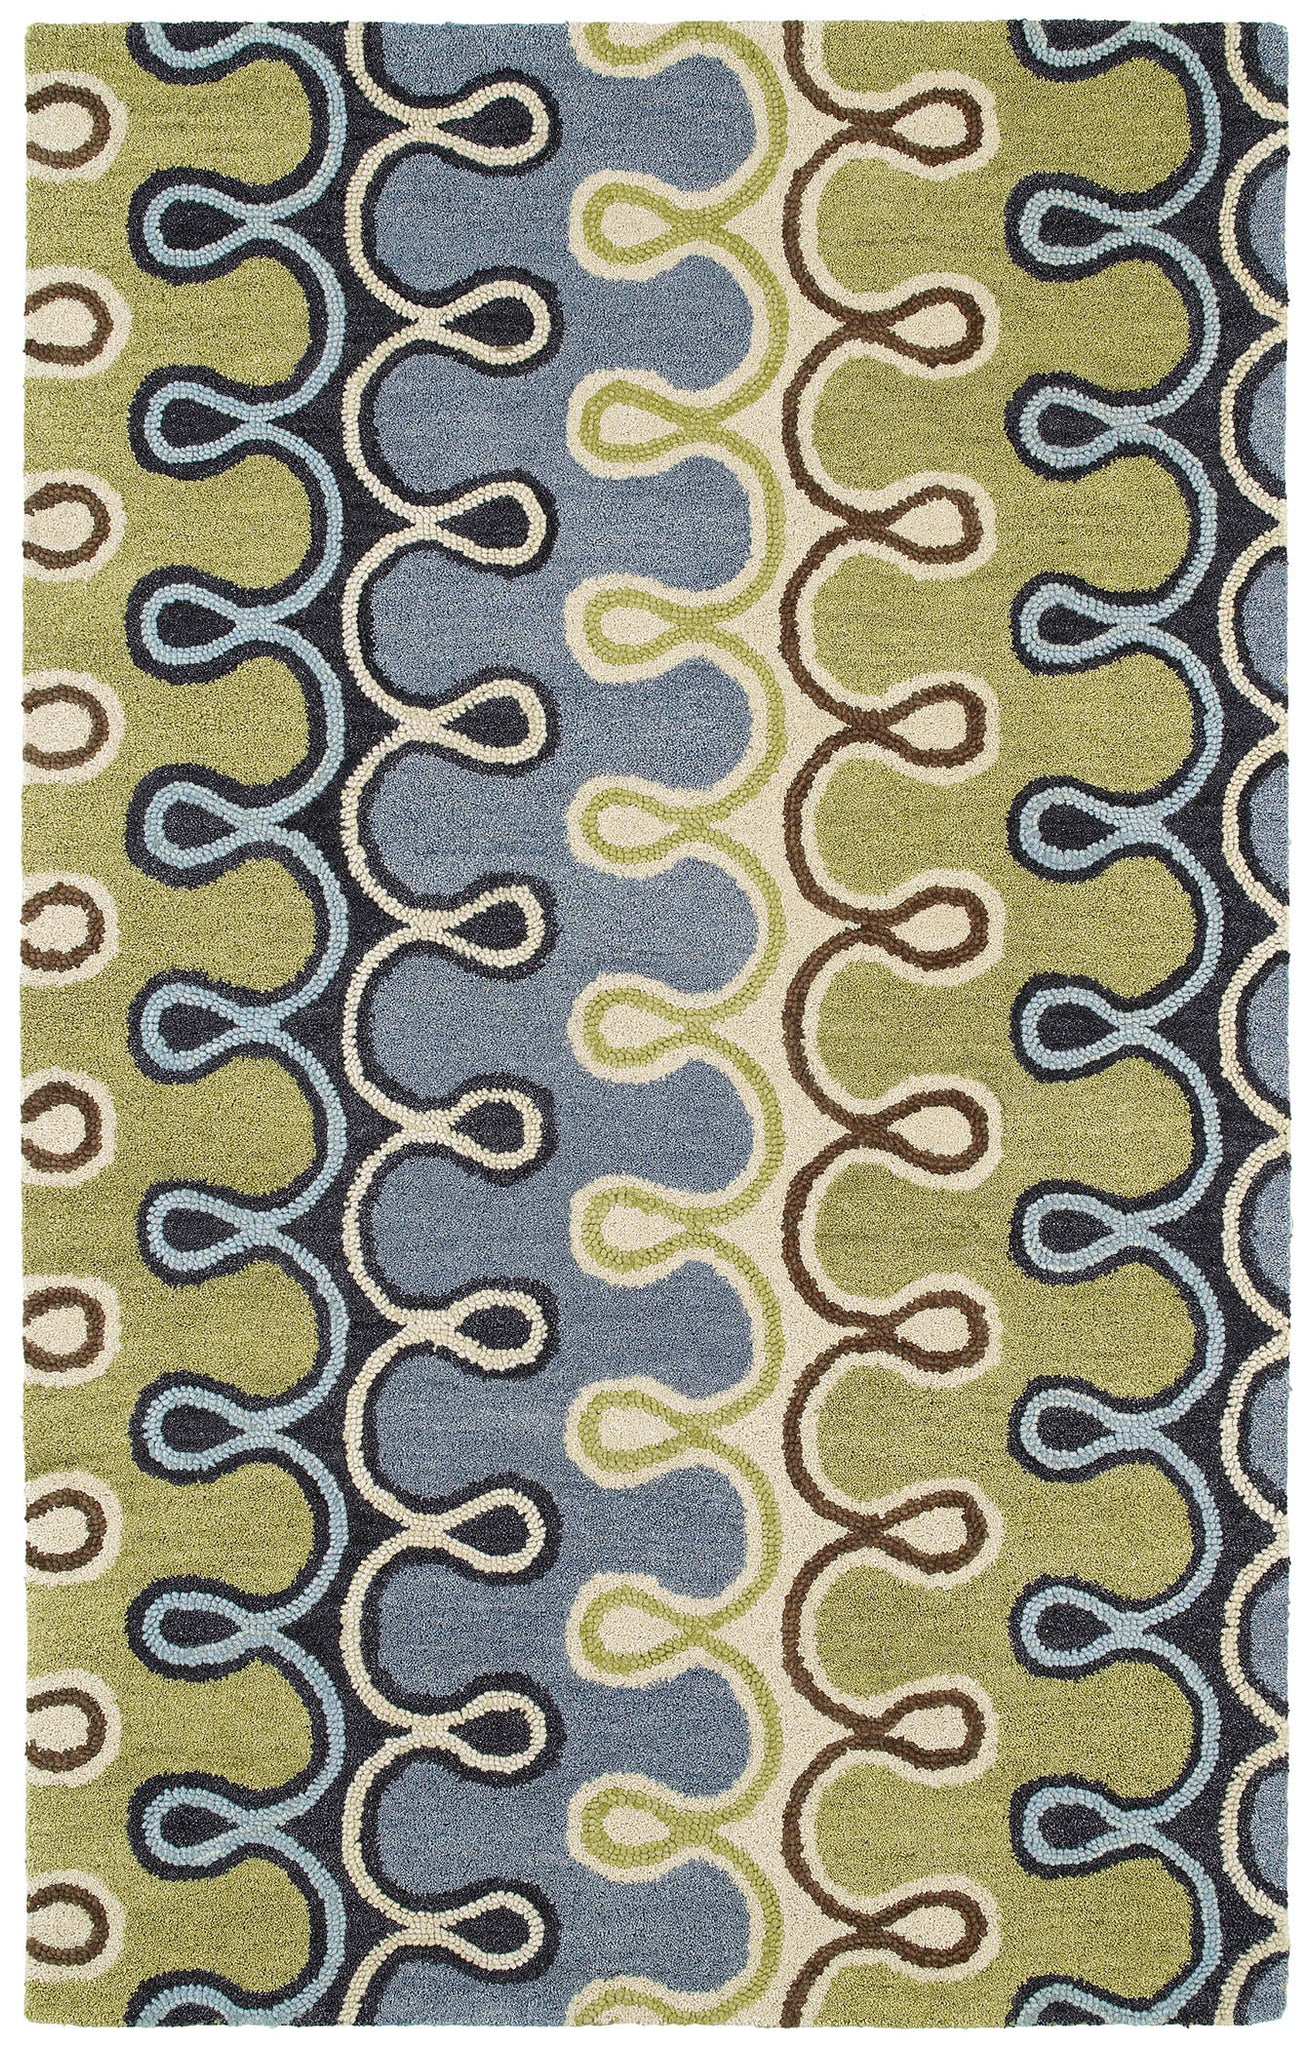 Kaleen Casual Axel-56 Blue Area Rug main image